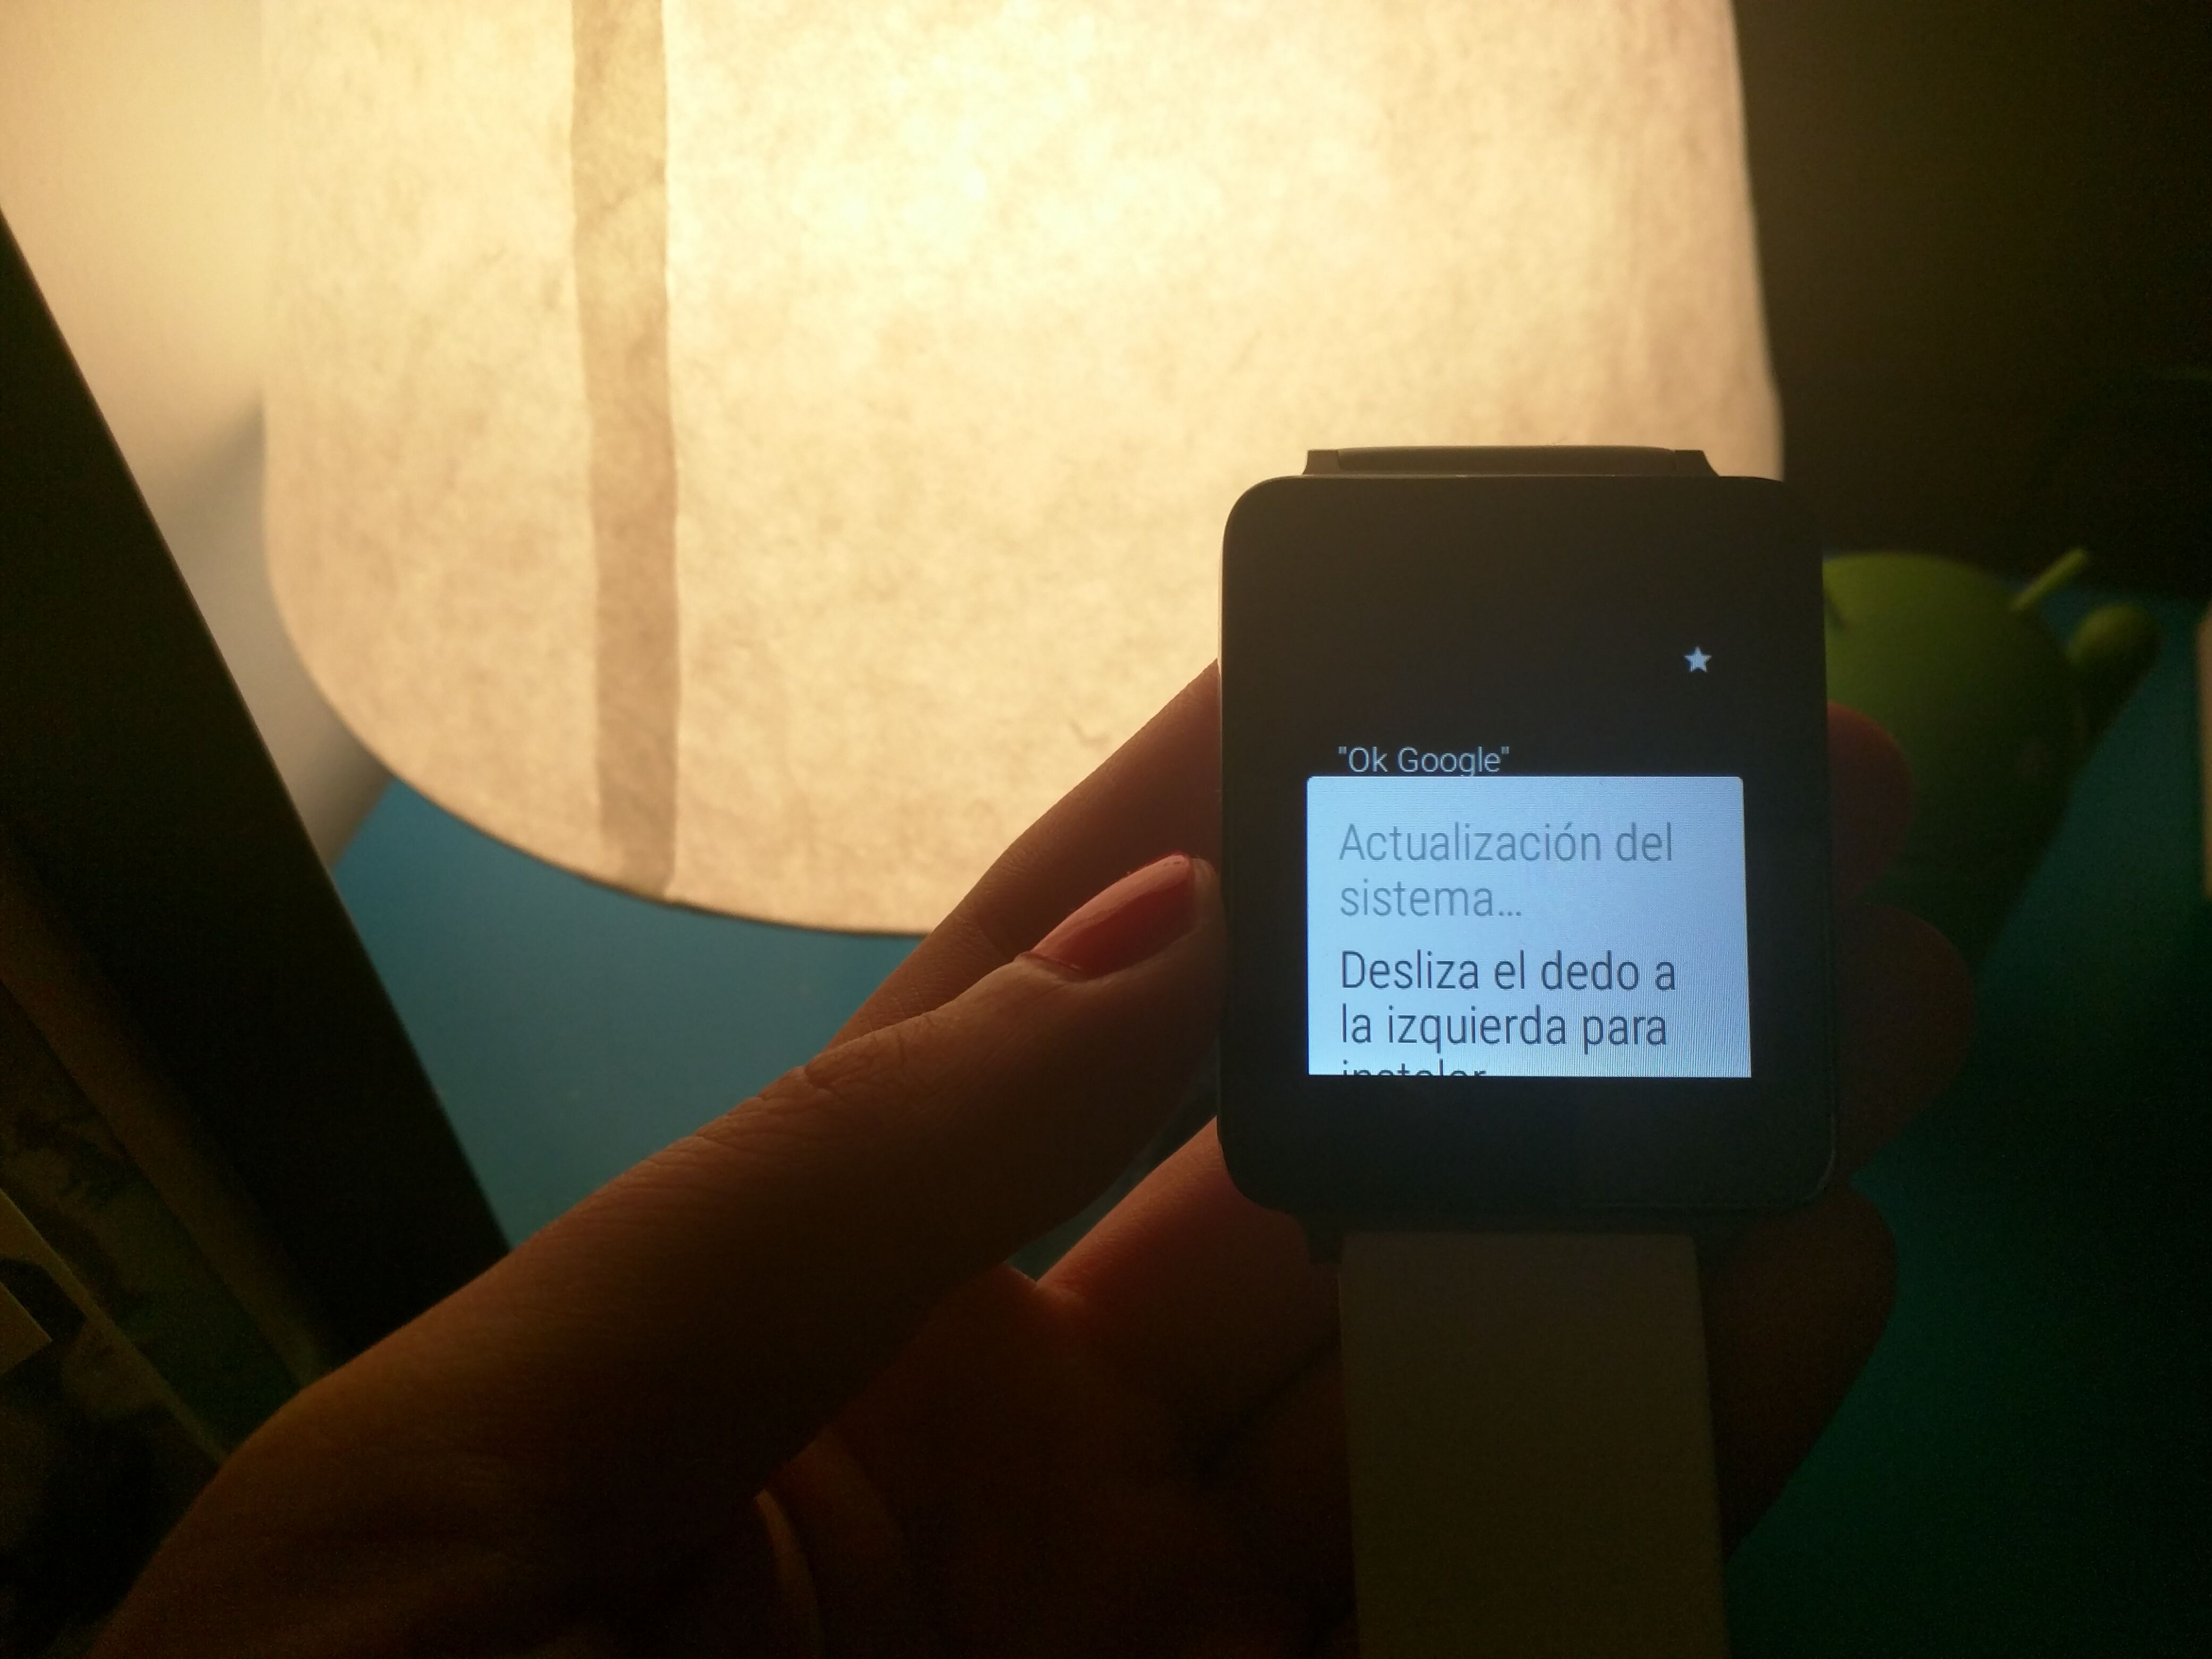 Cómo actualizar el LG G Watch a Android Wear 1.3